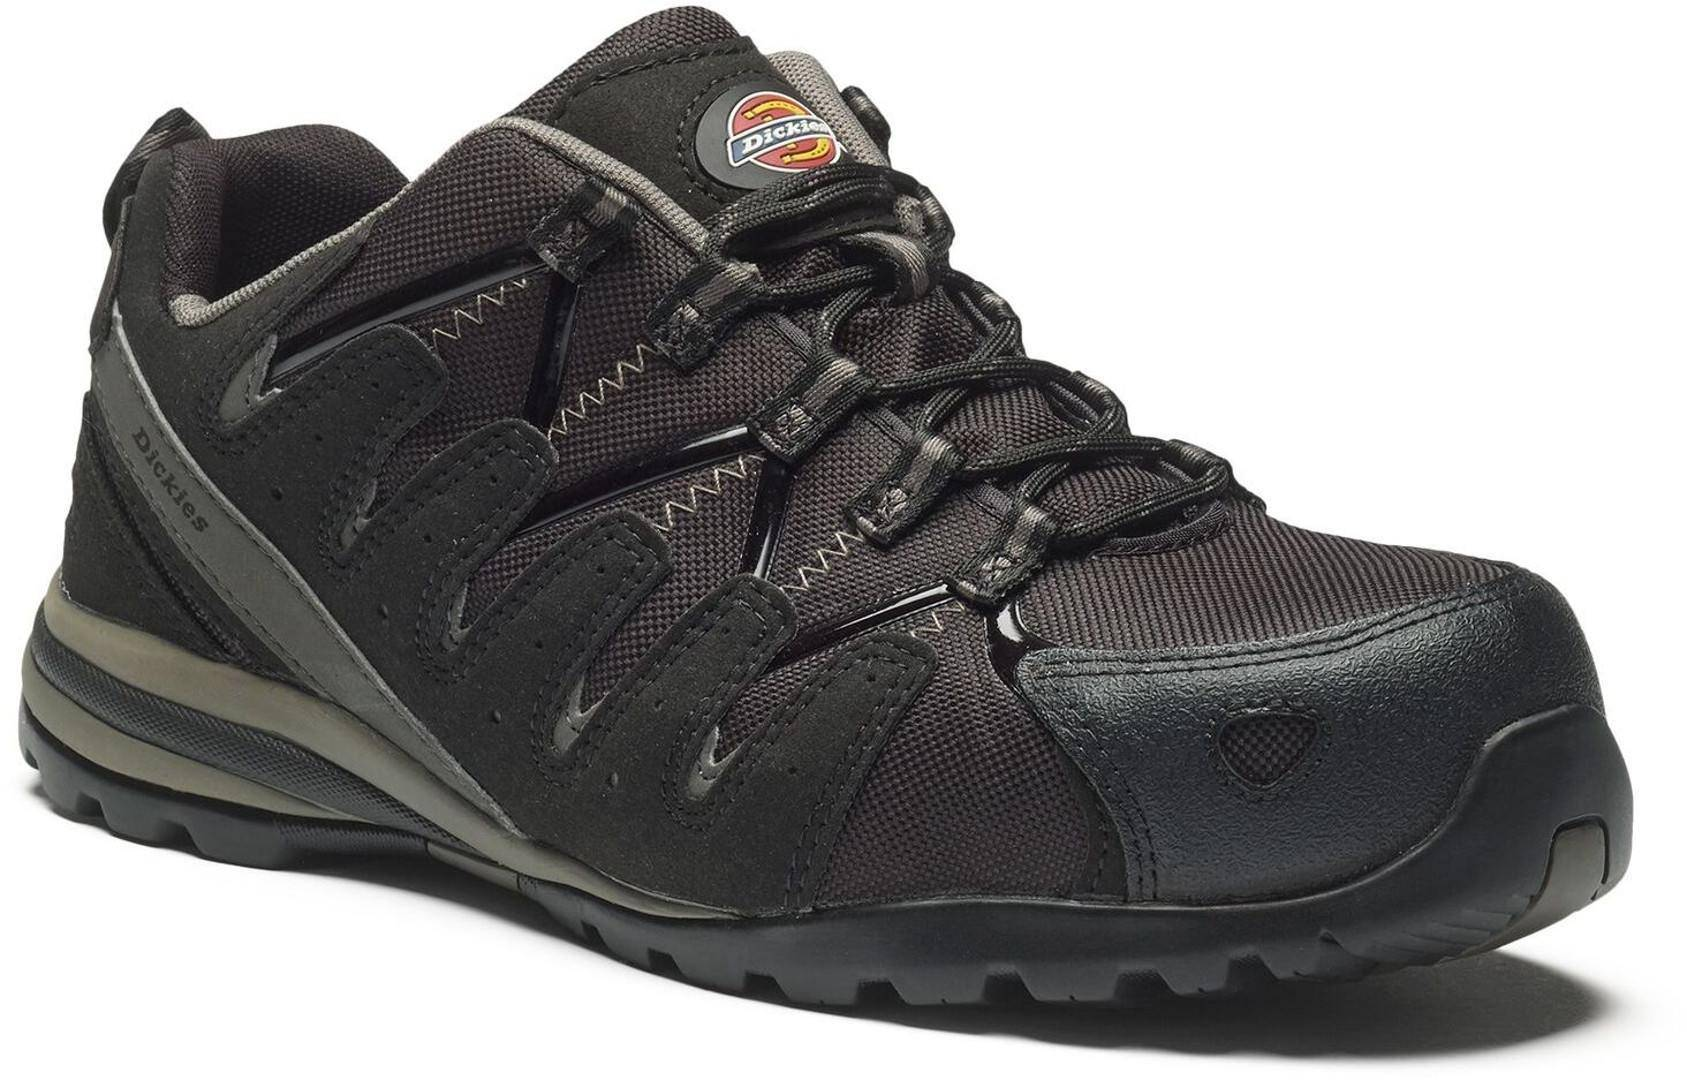 Dickies Workwear Tiber Safety Shoes Black 39